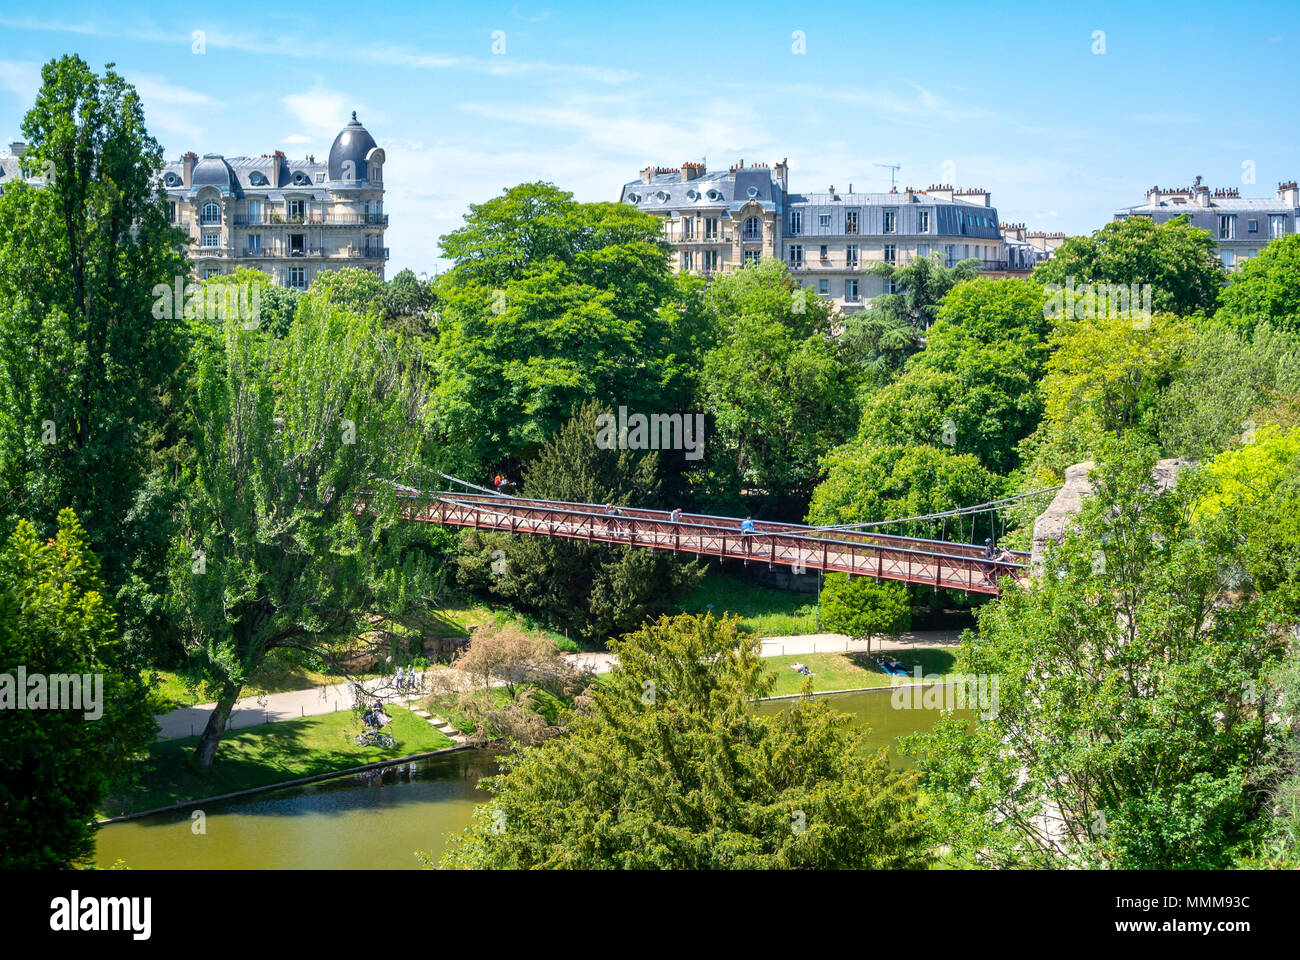 A bridge in parc des buttes chaumont with Parisian haussmann architecture, paris, france Stock Photo